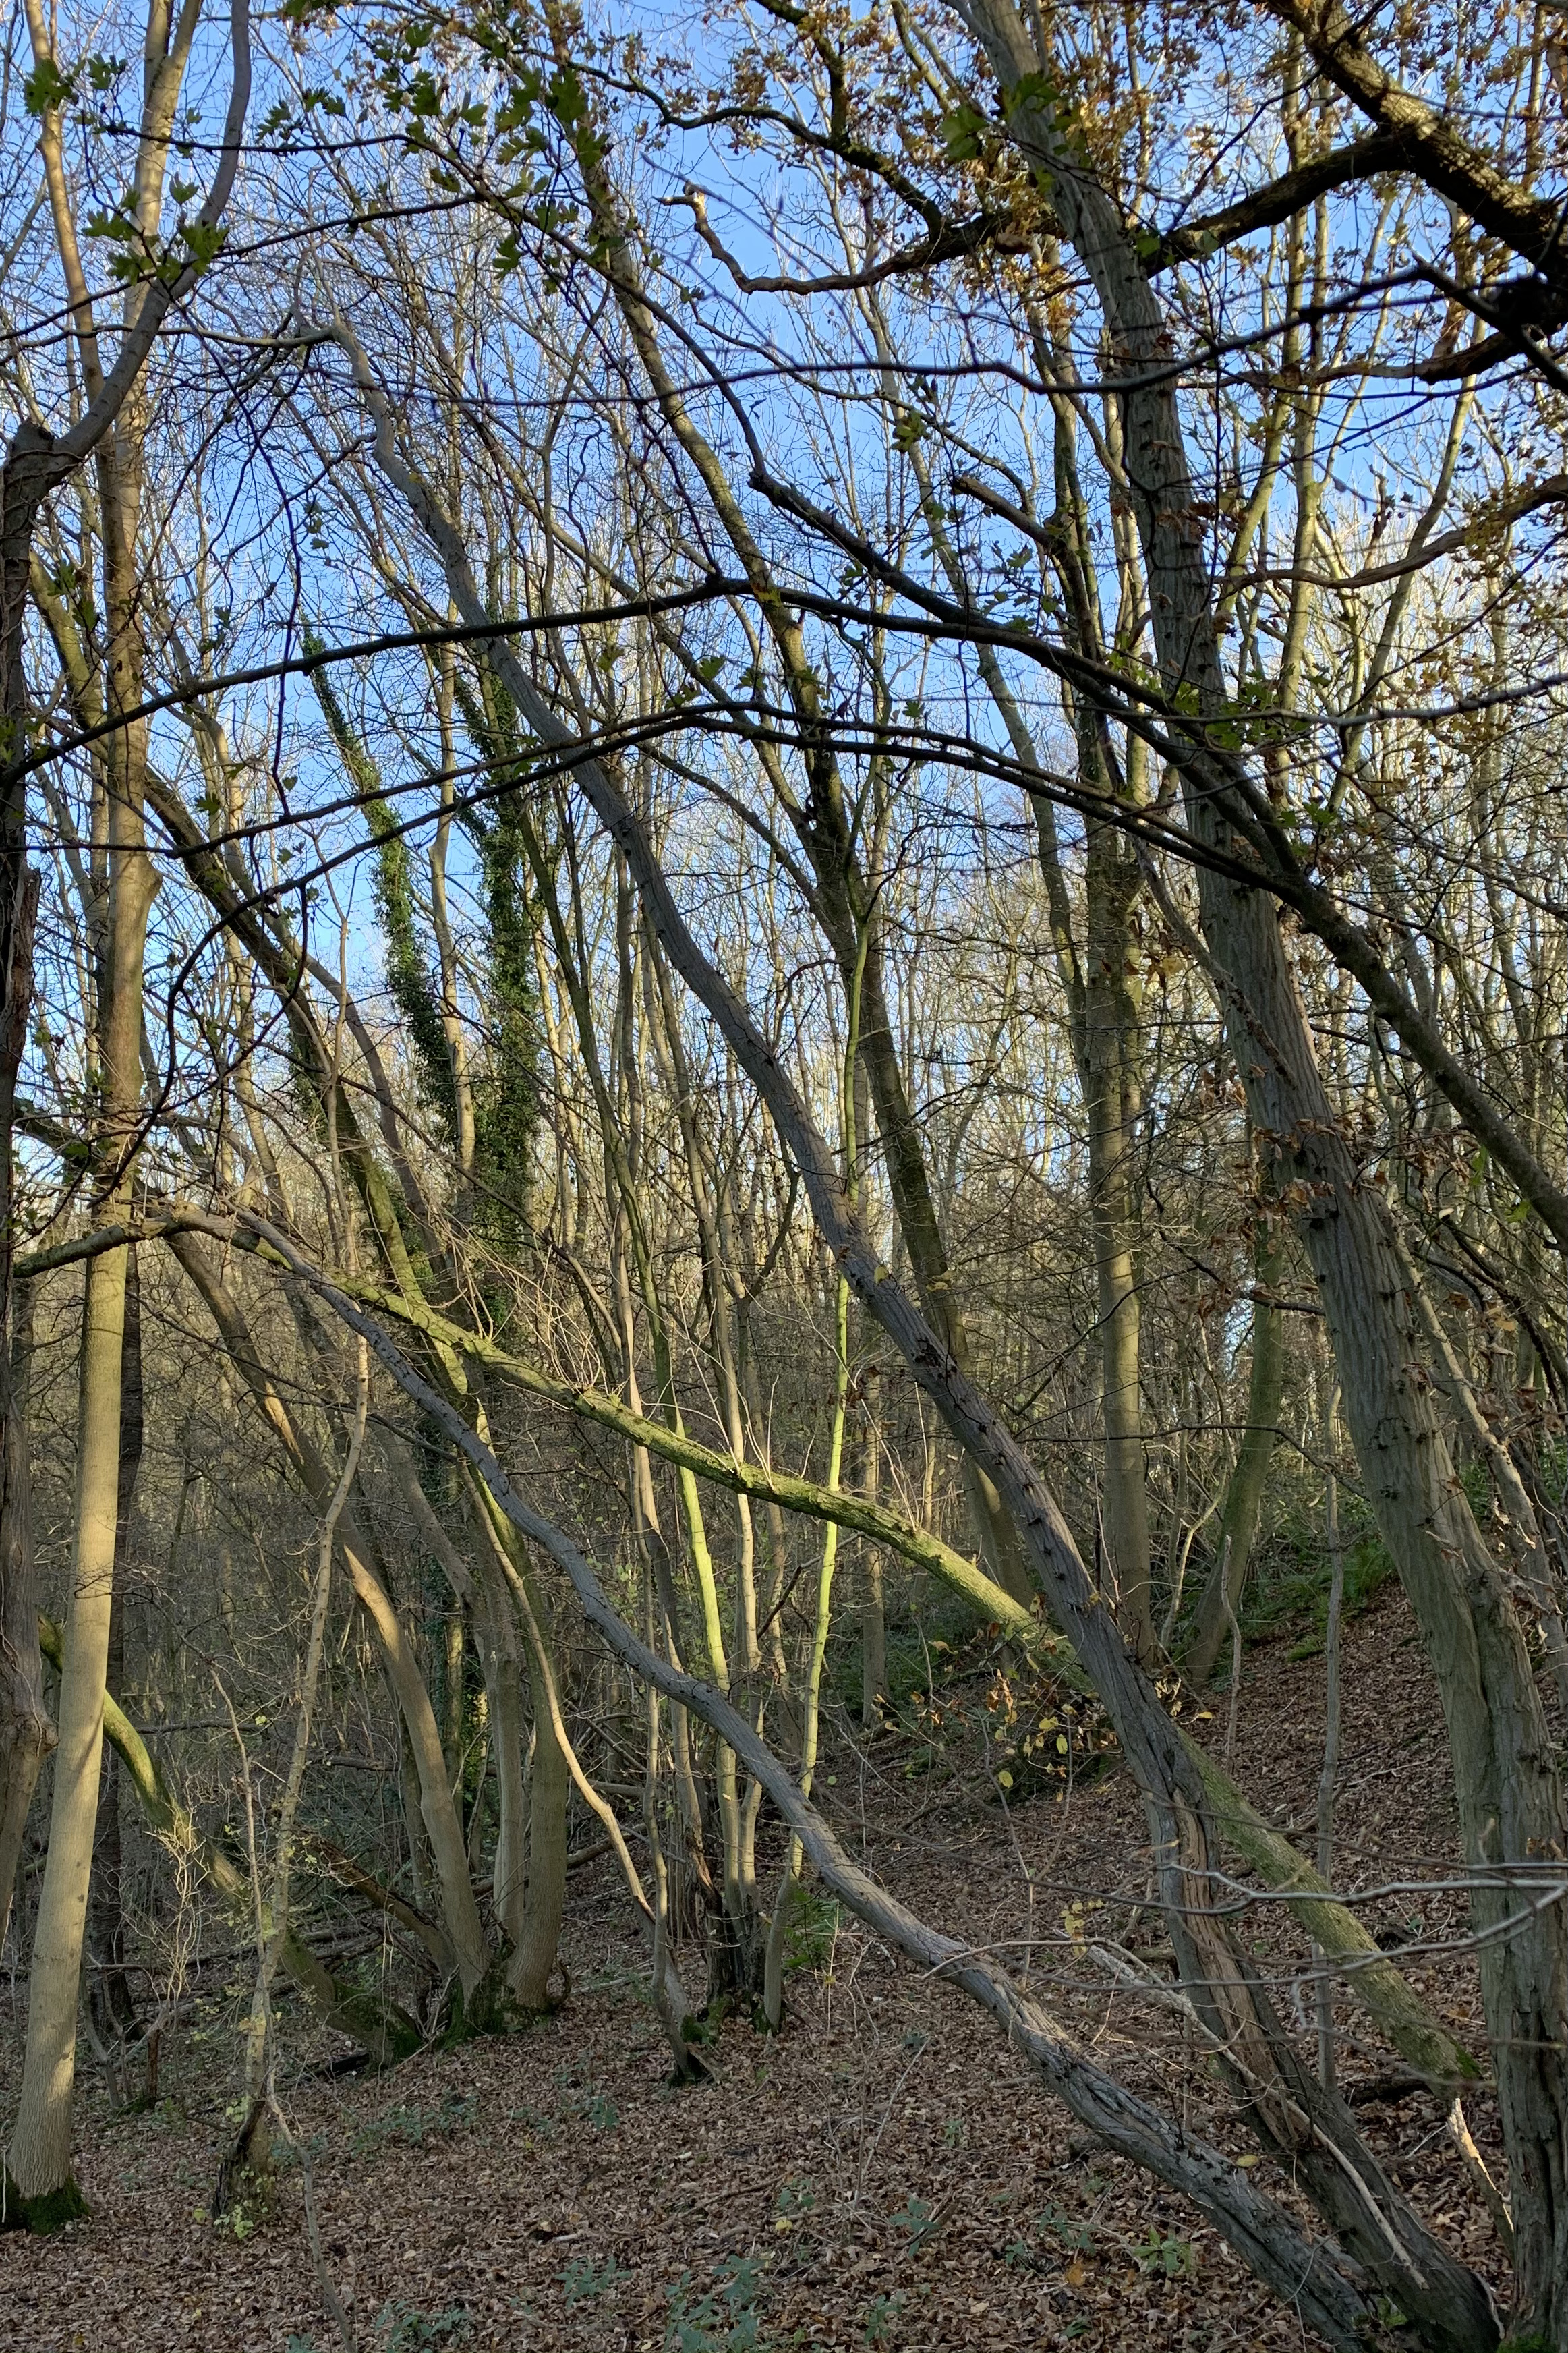 A tangle of pale brown and green tree trunks sprout from a leaf covered slope, all reaching up to the bright blue sky above. There are a myriad of shapes outlined by the trunks and branches, so many that it feels as though, if you look hard enough, a picture will emerge from the lines.